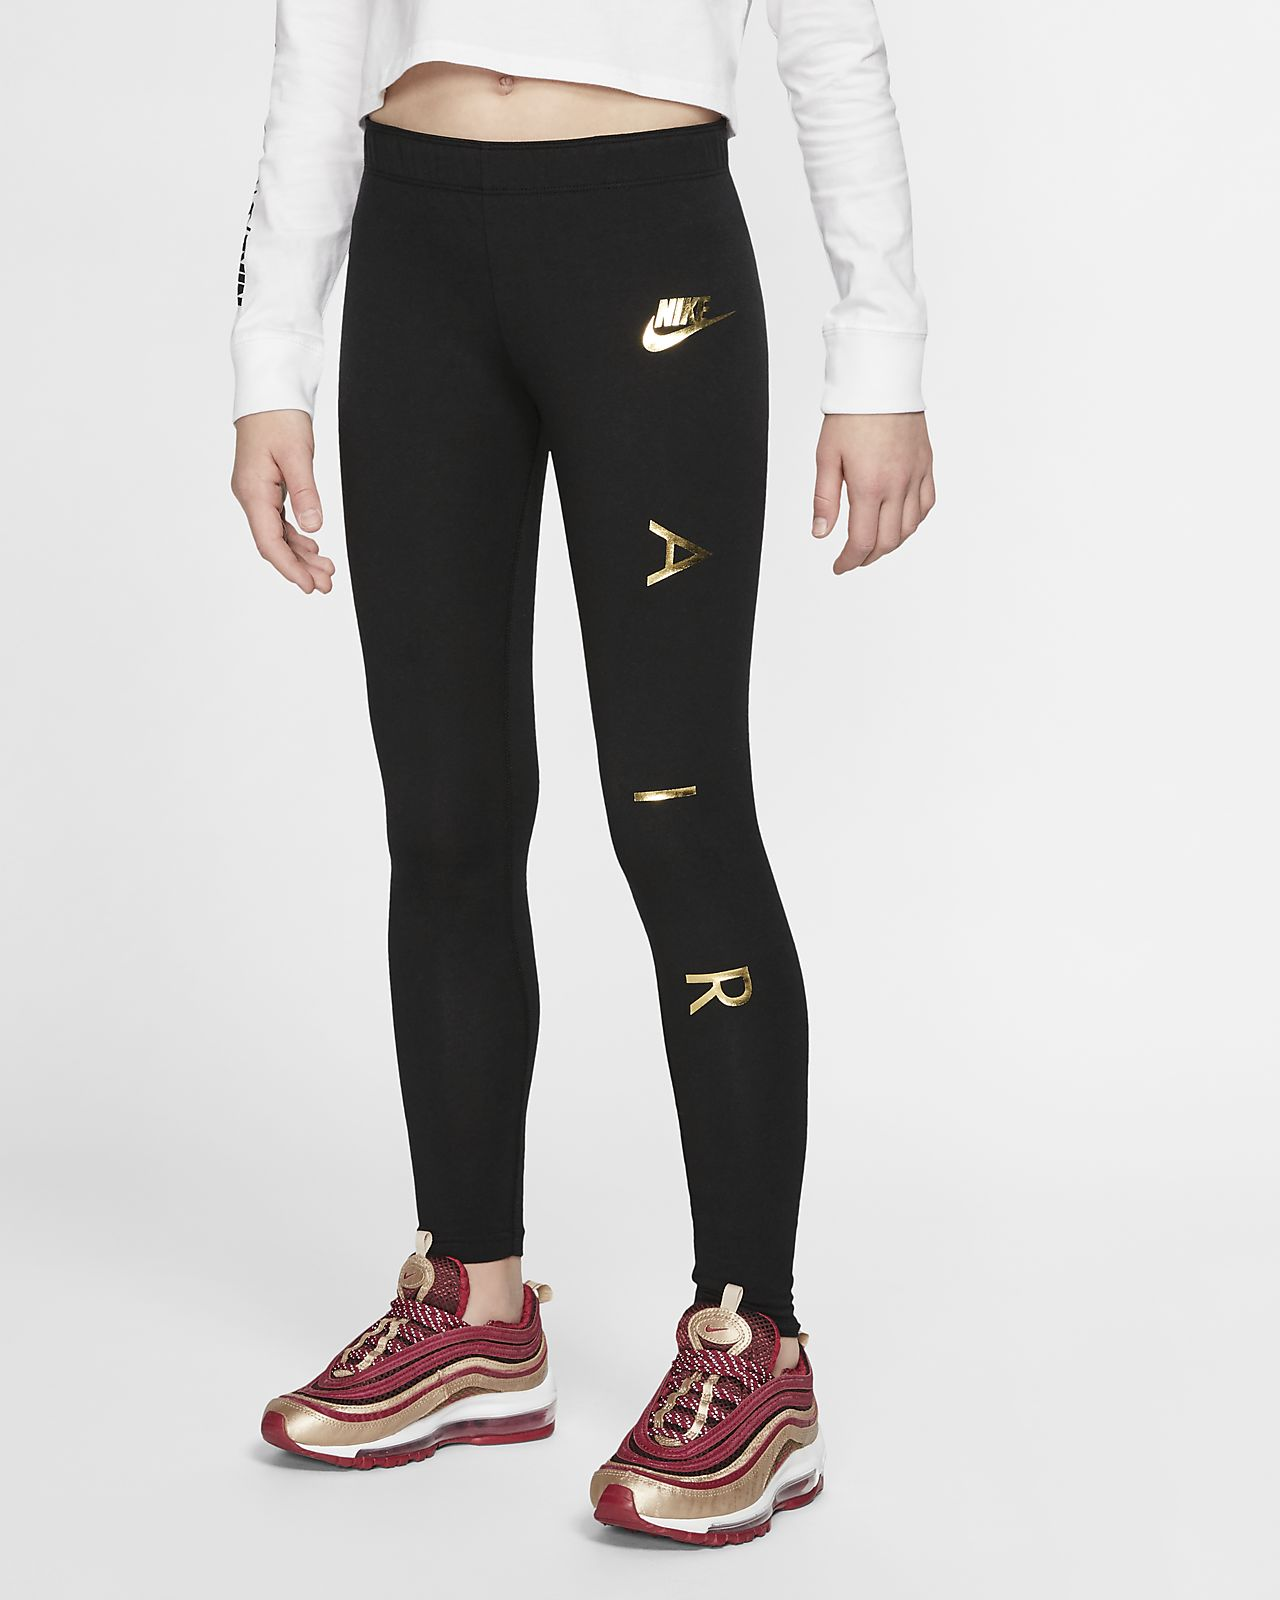 Leggings Nike Air - Bambina/Ragazza